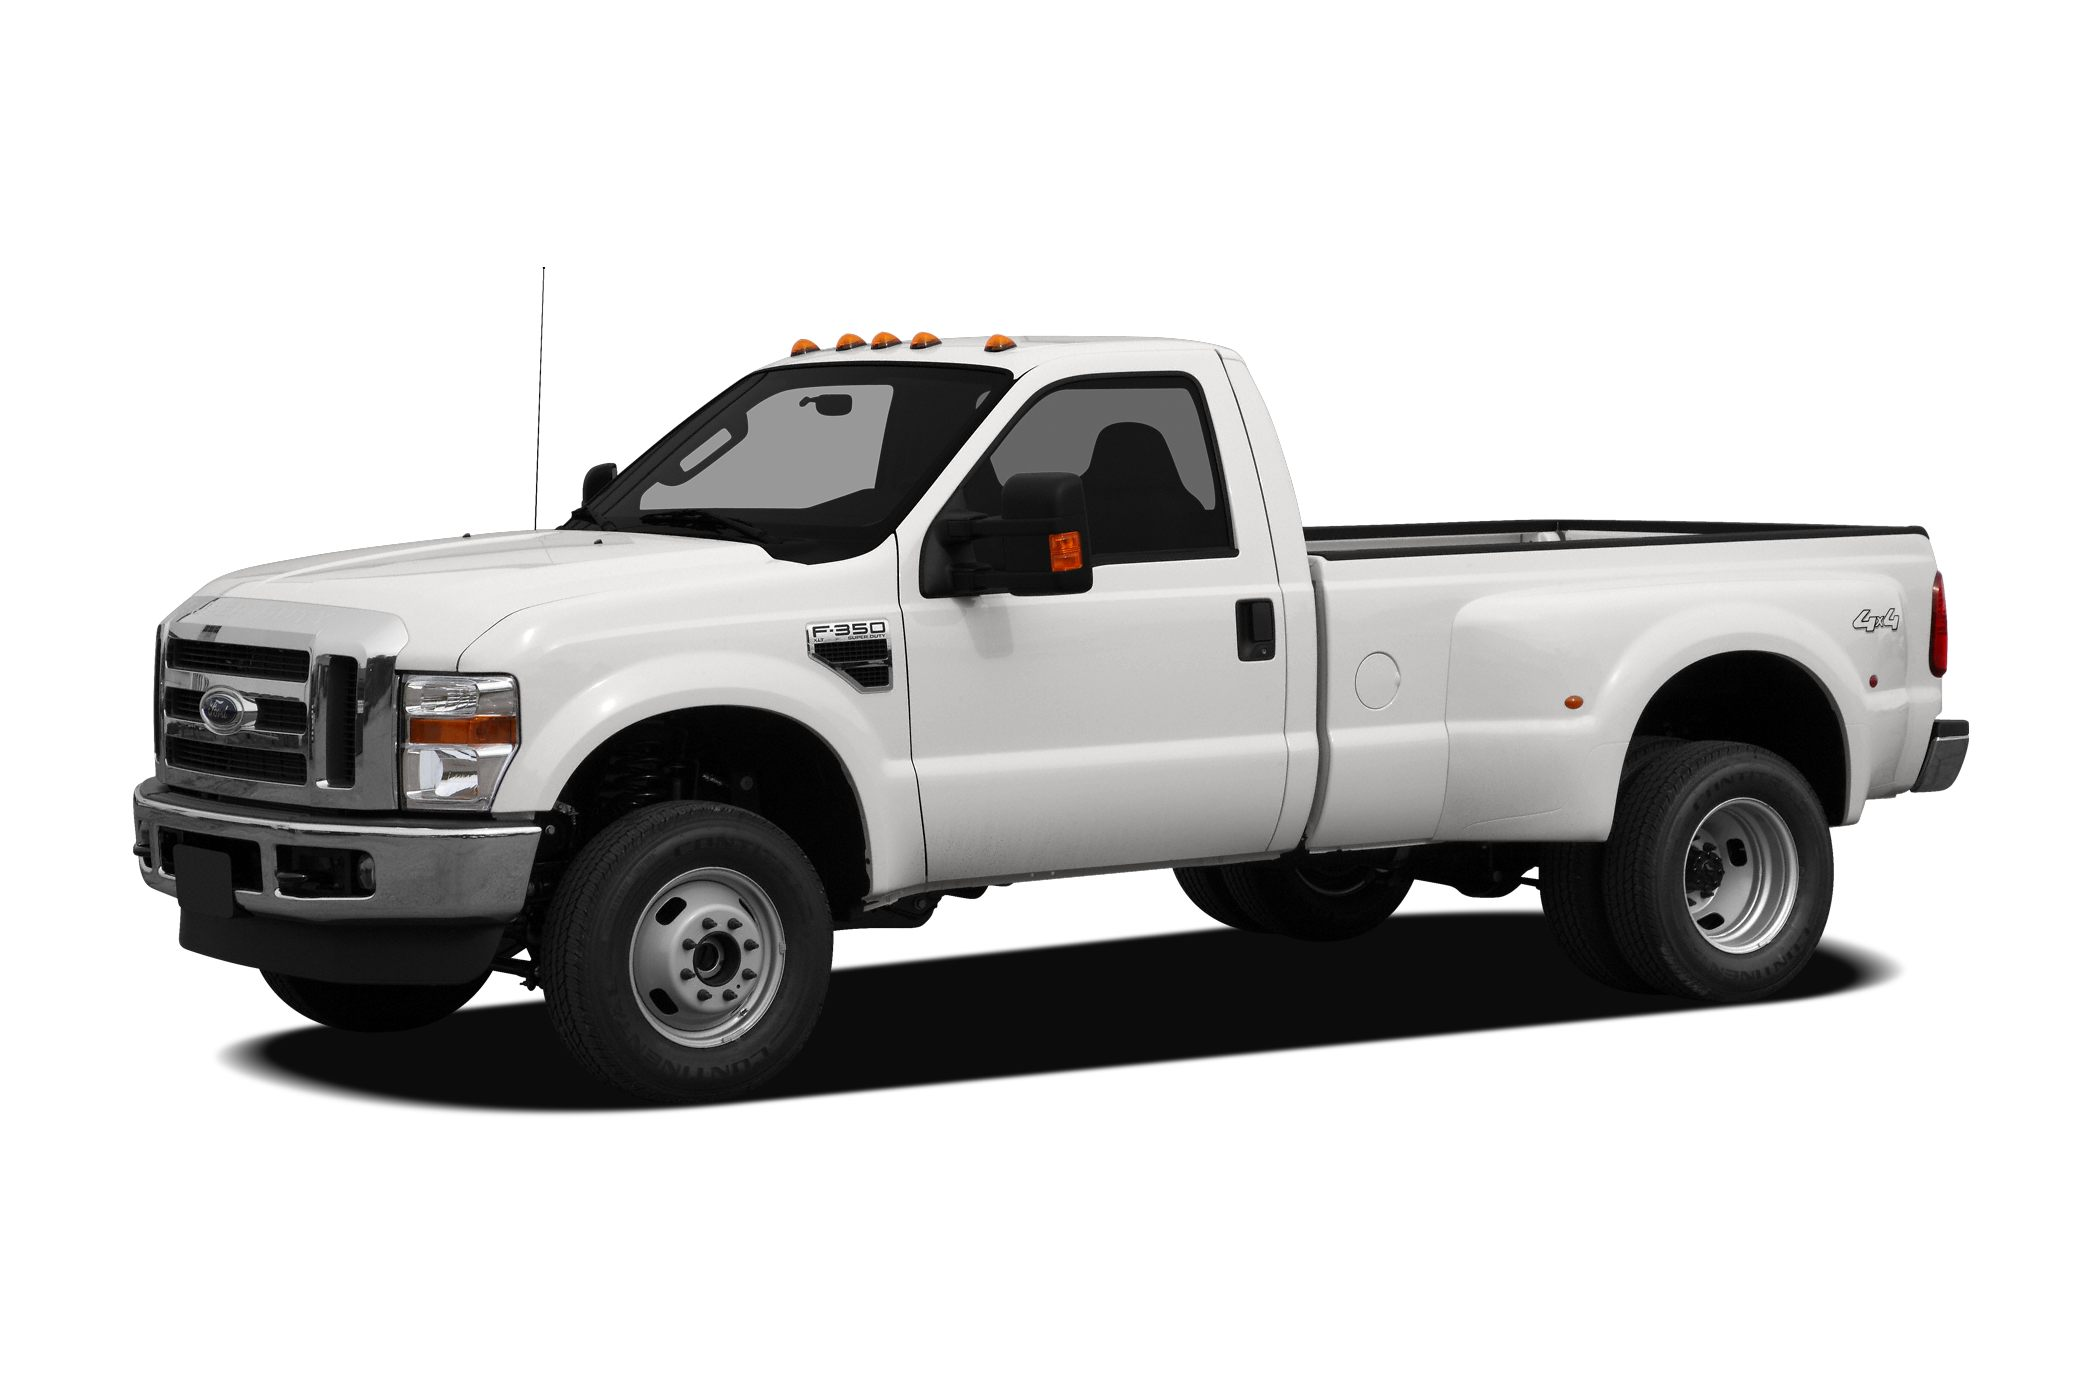 towing capacity of f350 super duty vs dodge ram autos post. Black Bedroom Furniture Sets. Home Design Ideas